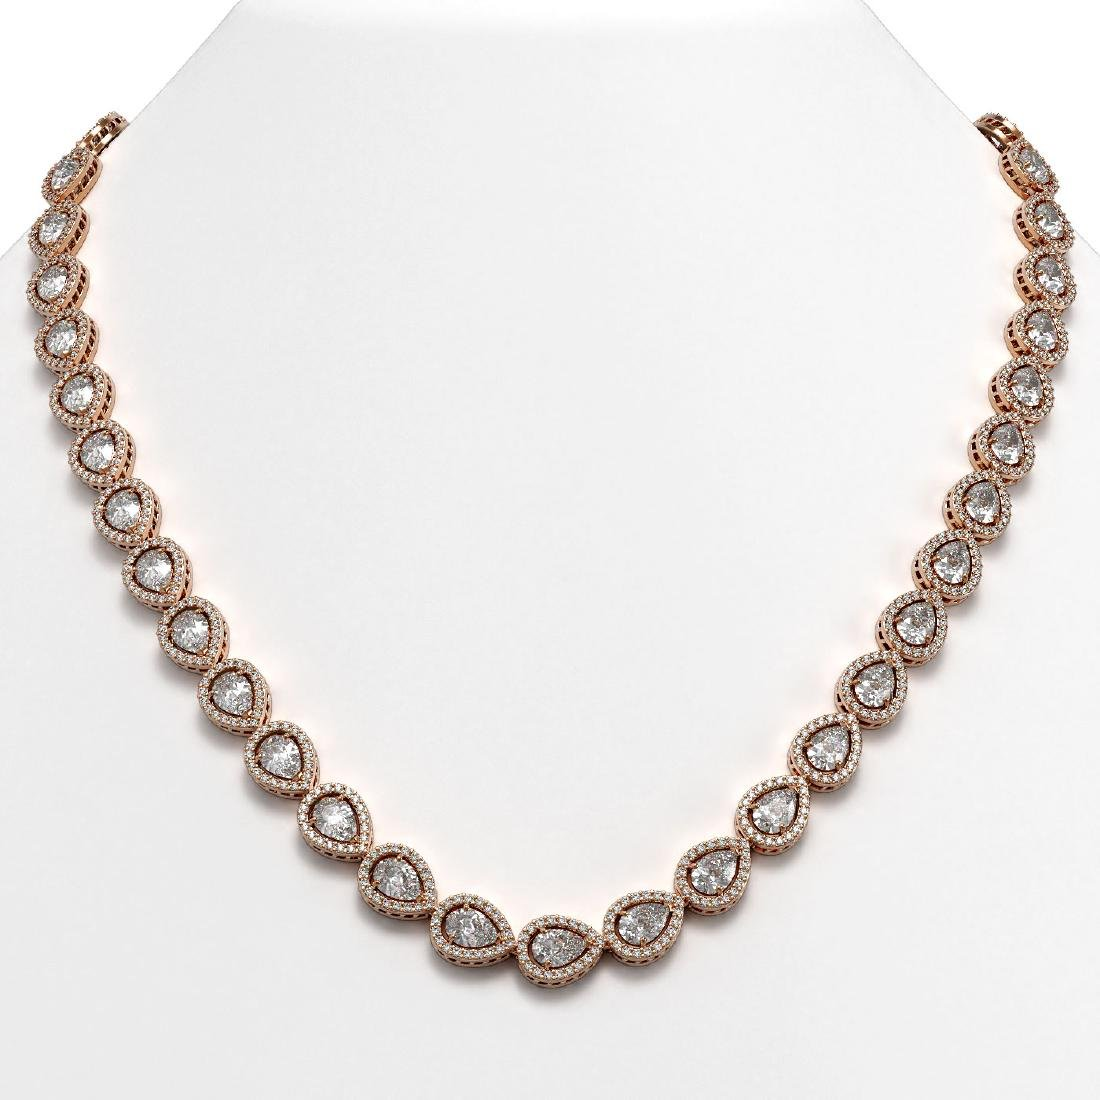 33.08 CTW Pear Diamond Designer Necklace 18K Rose Gold